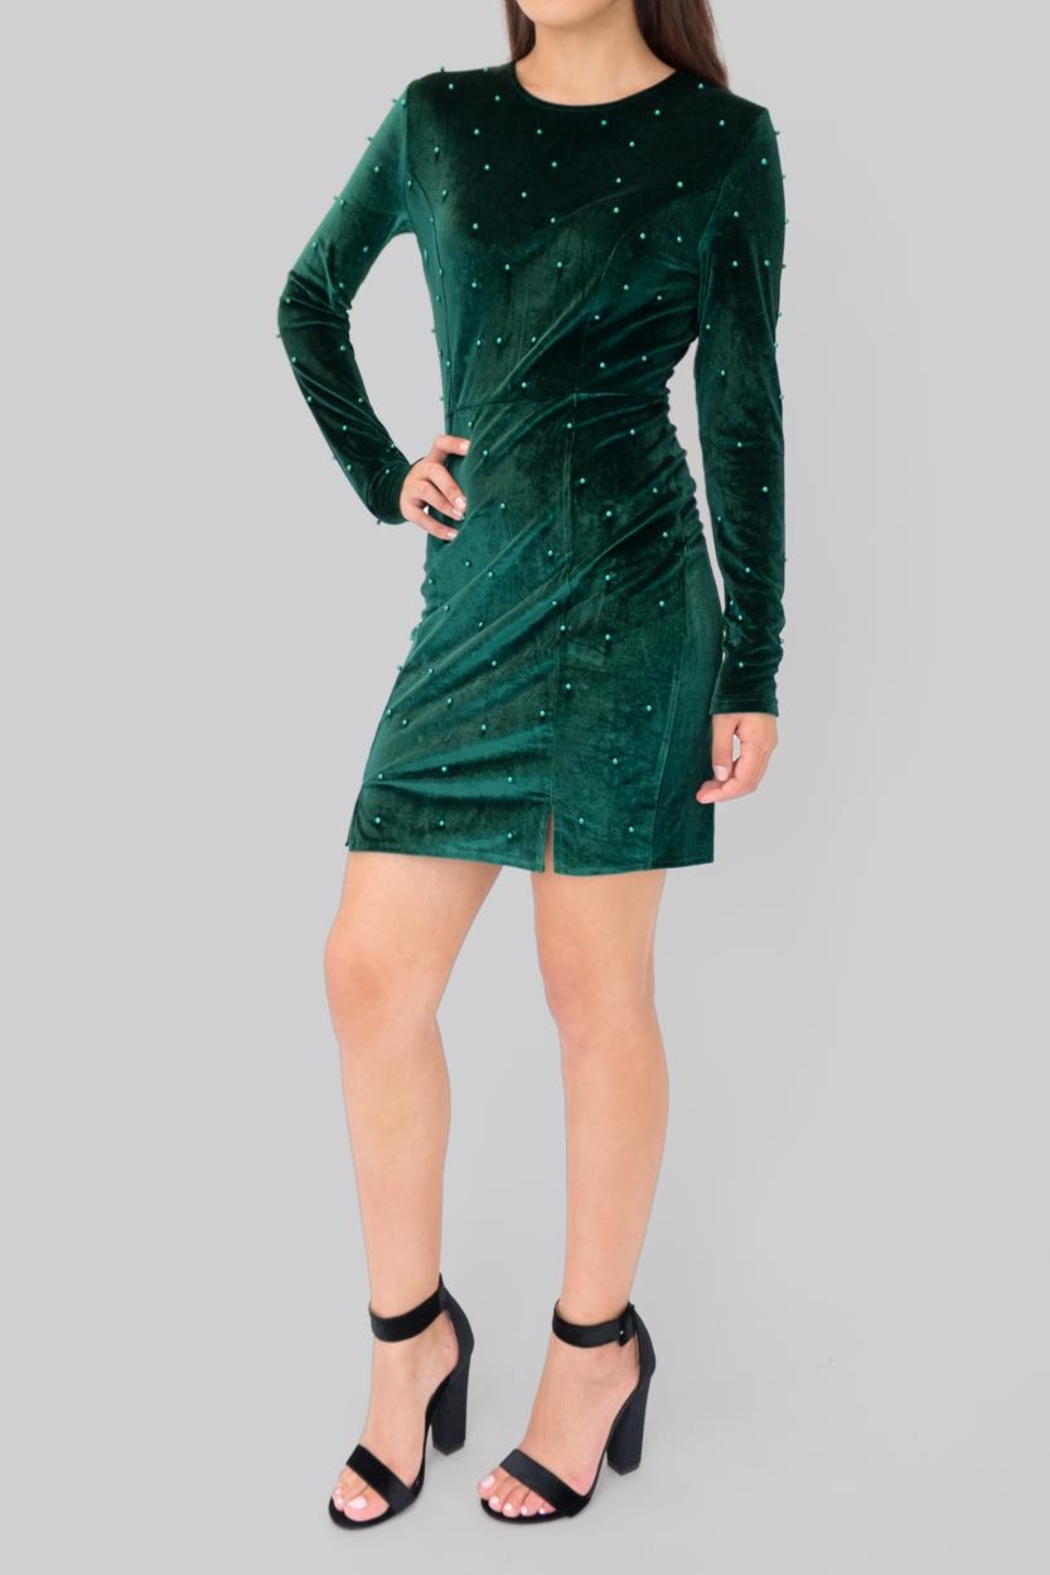 Eros Apparel Embellished Velvet Dress - Main Image